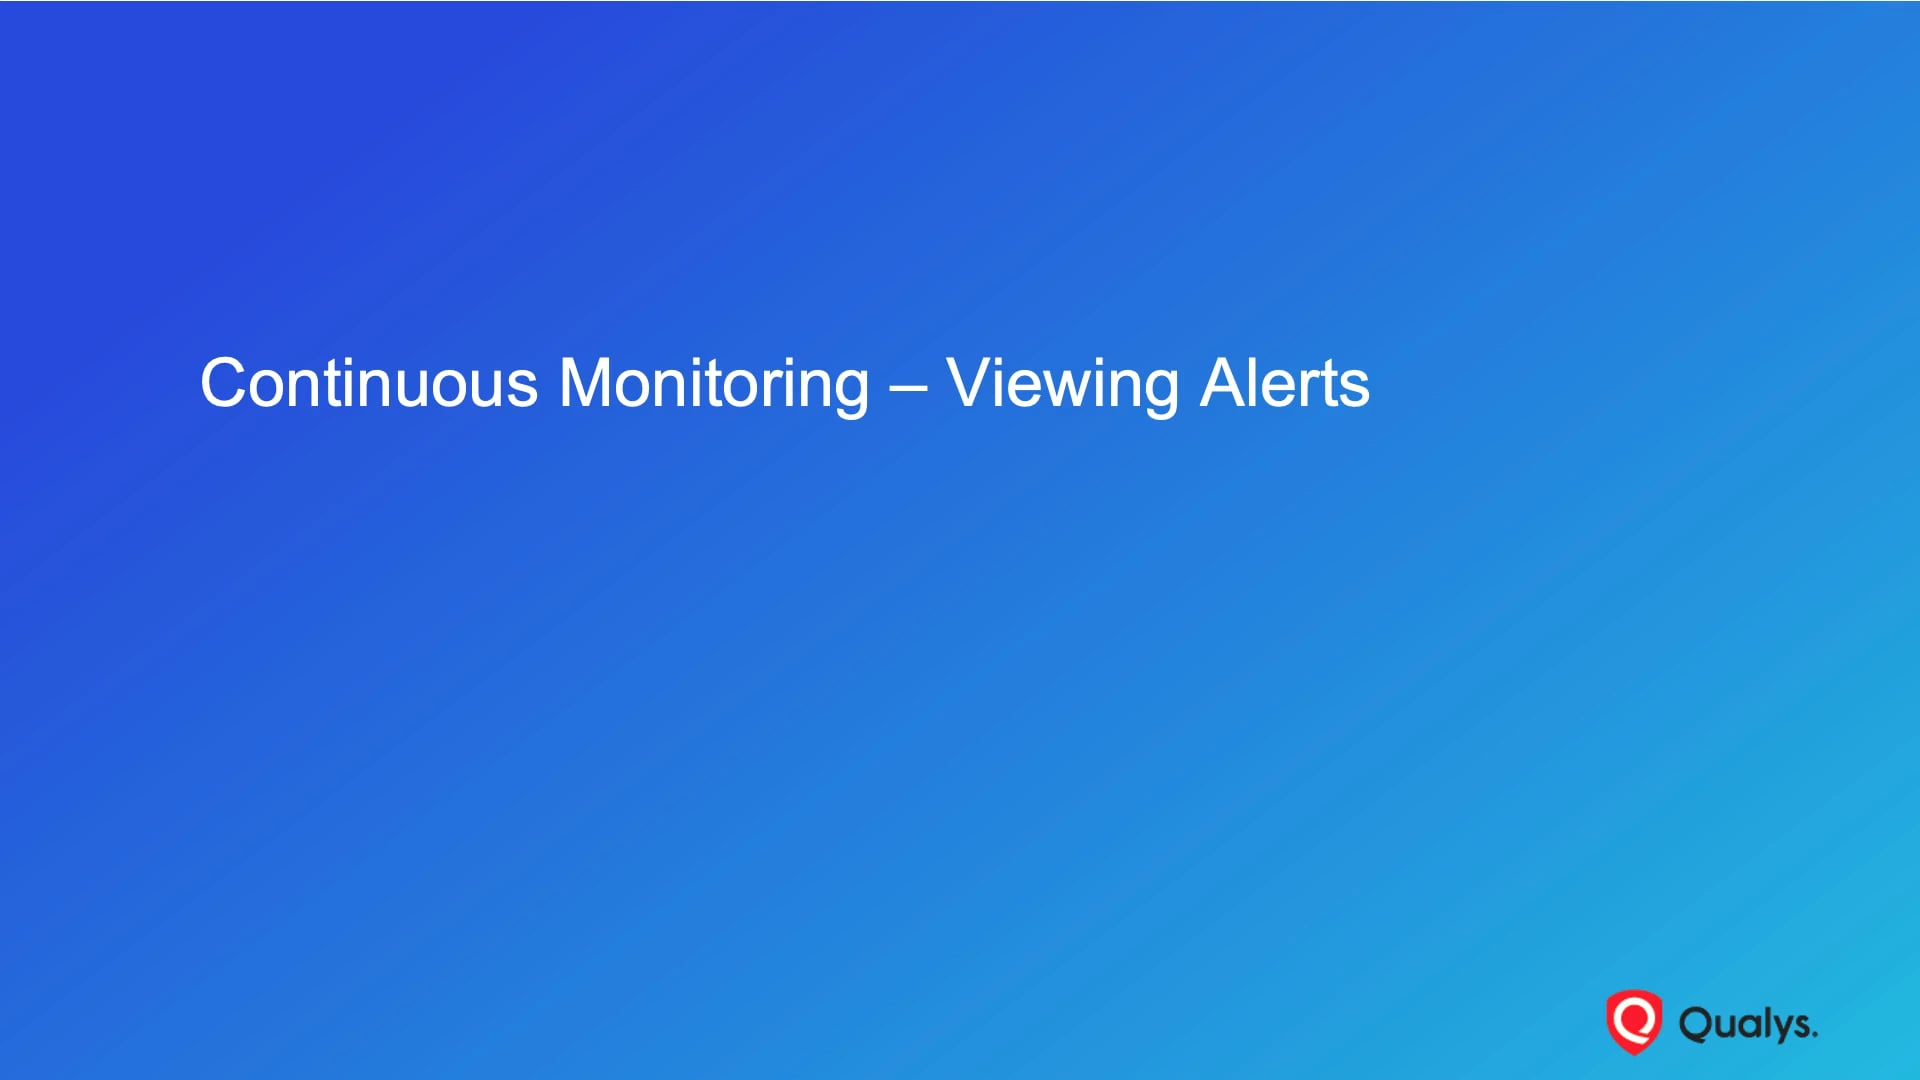 Continuous Monitoring - Viewing Alerts